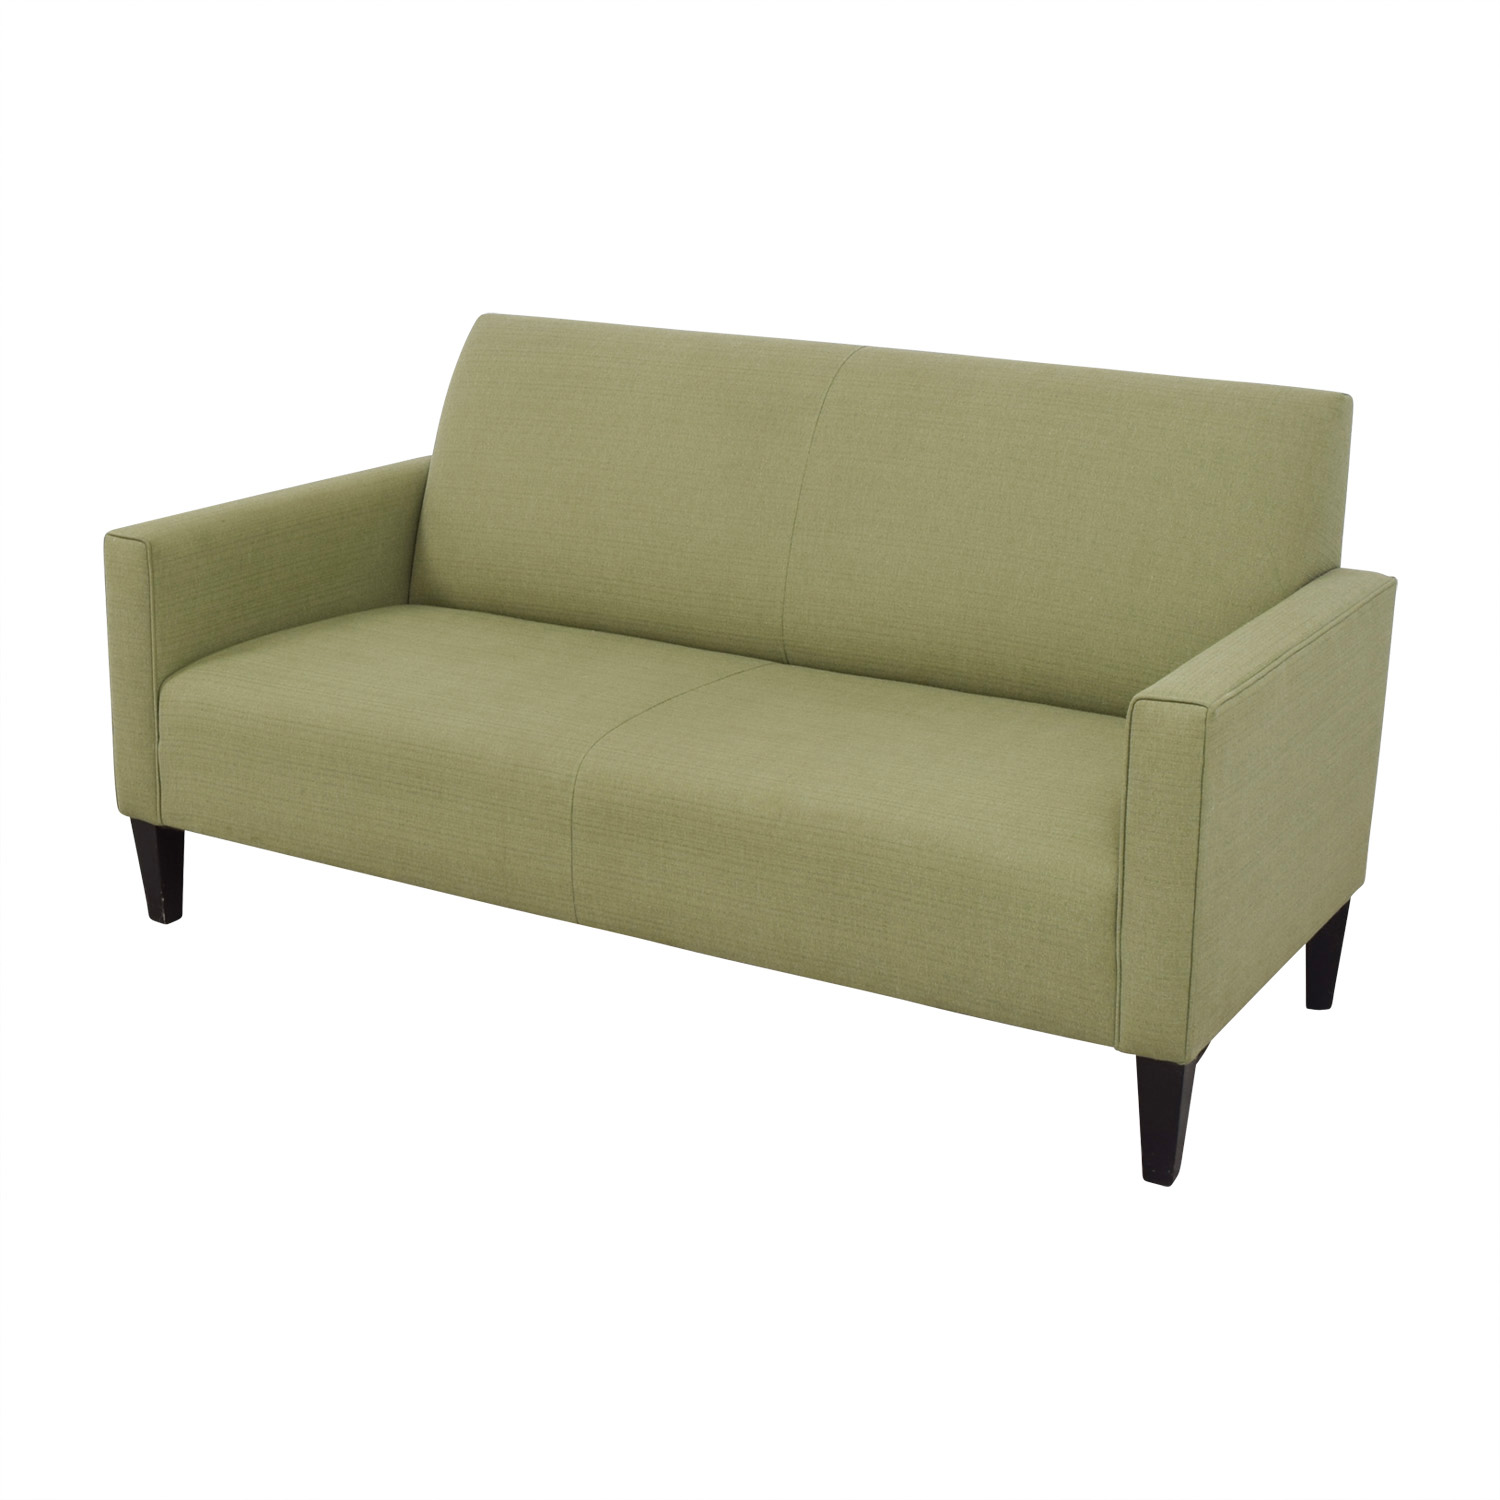 80 off crate barrel crate barrel moss green single cushion couch sofas. Black Bedroom Furniture Sets. Home Design Ideas